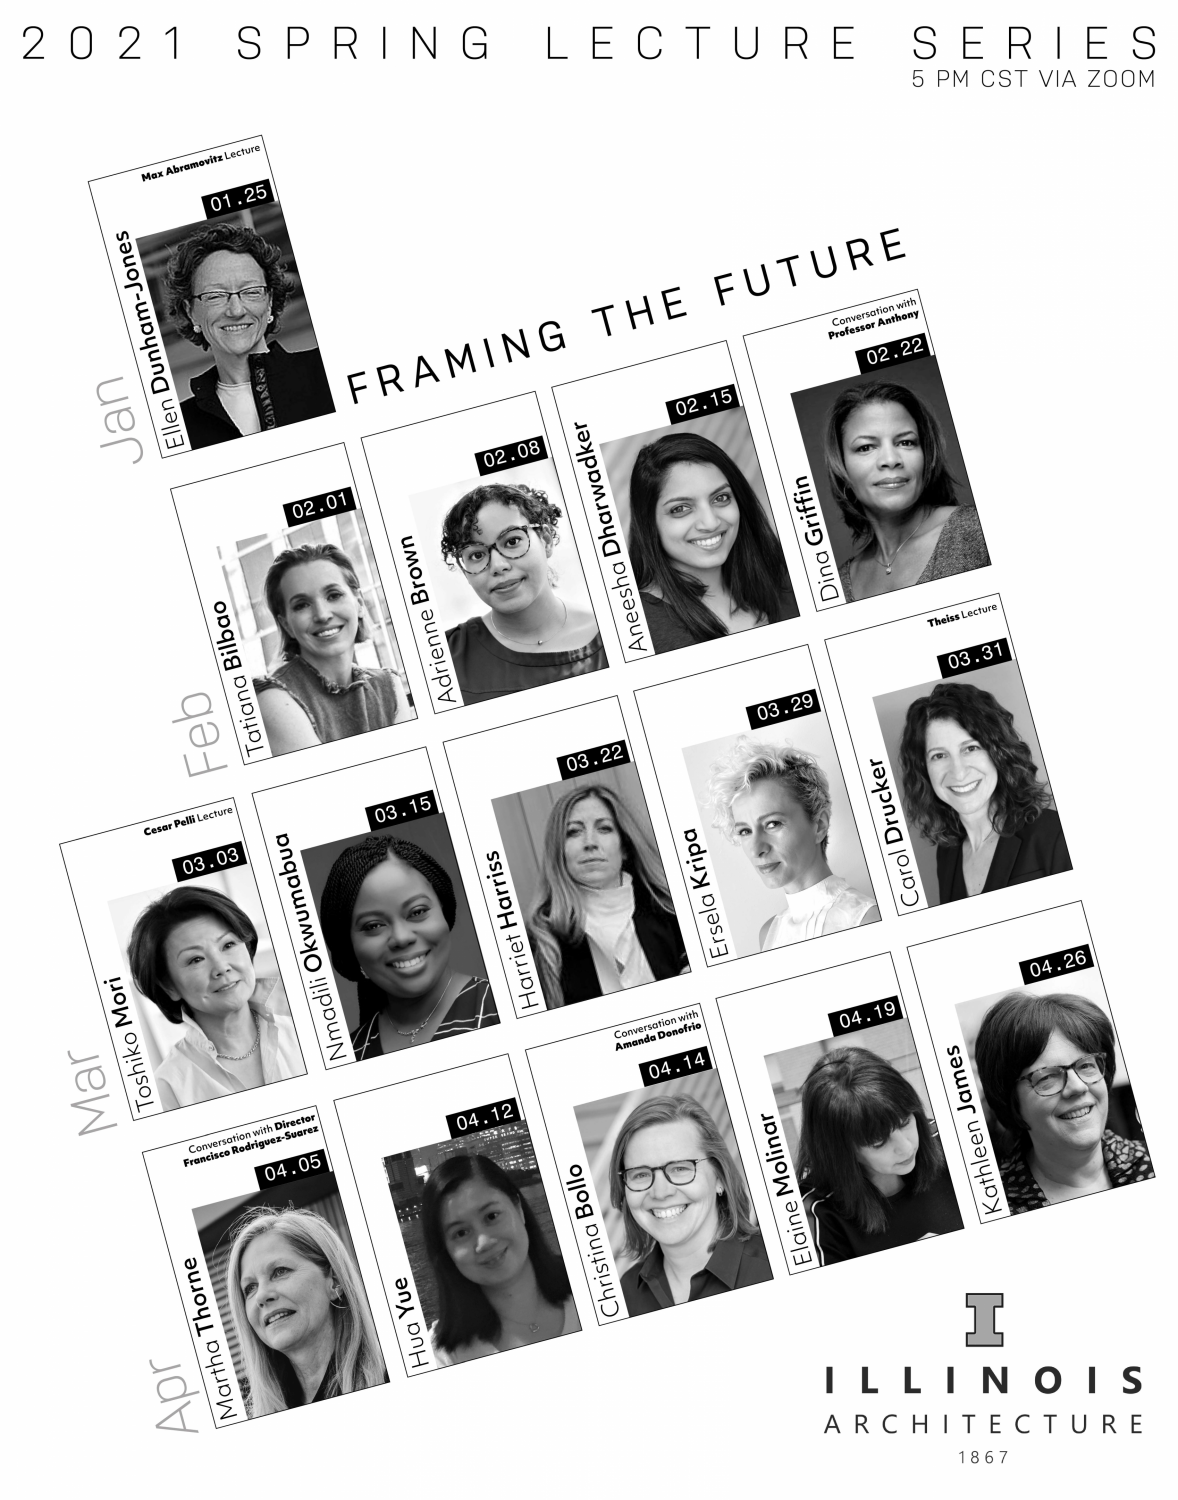 Poster with clack and white photographs of 15 women architects speaking in the 2021 Illinois School of Architecture Lecture Series, Framing the Future.